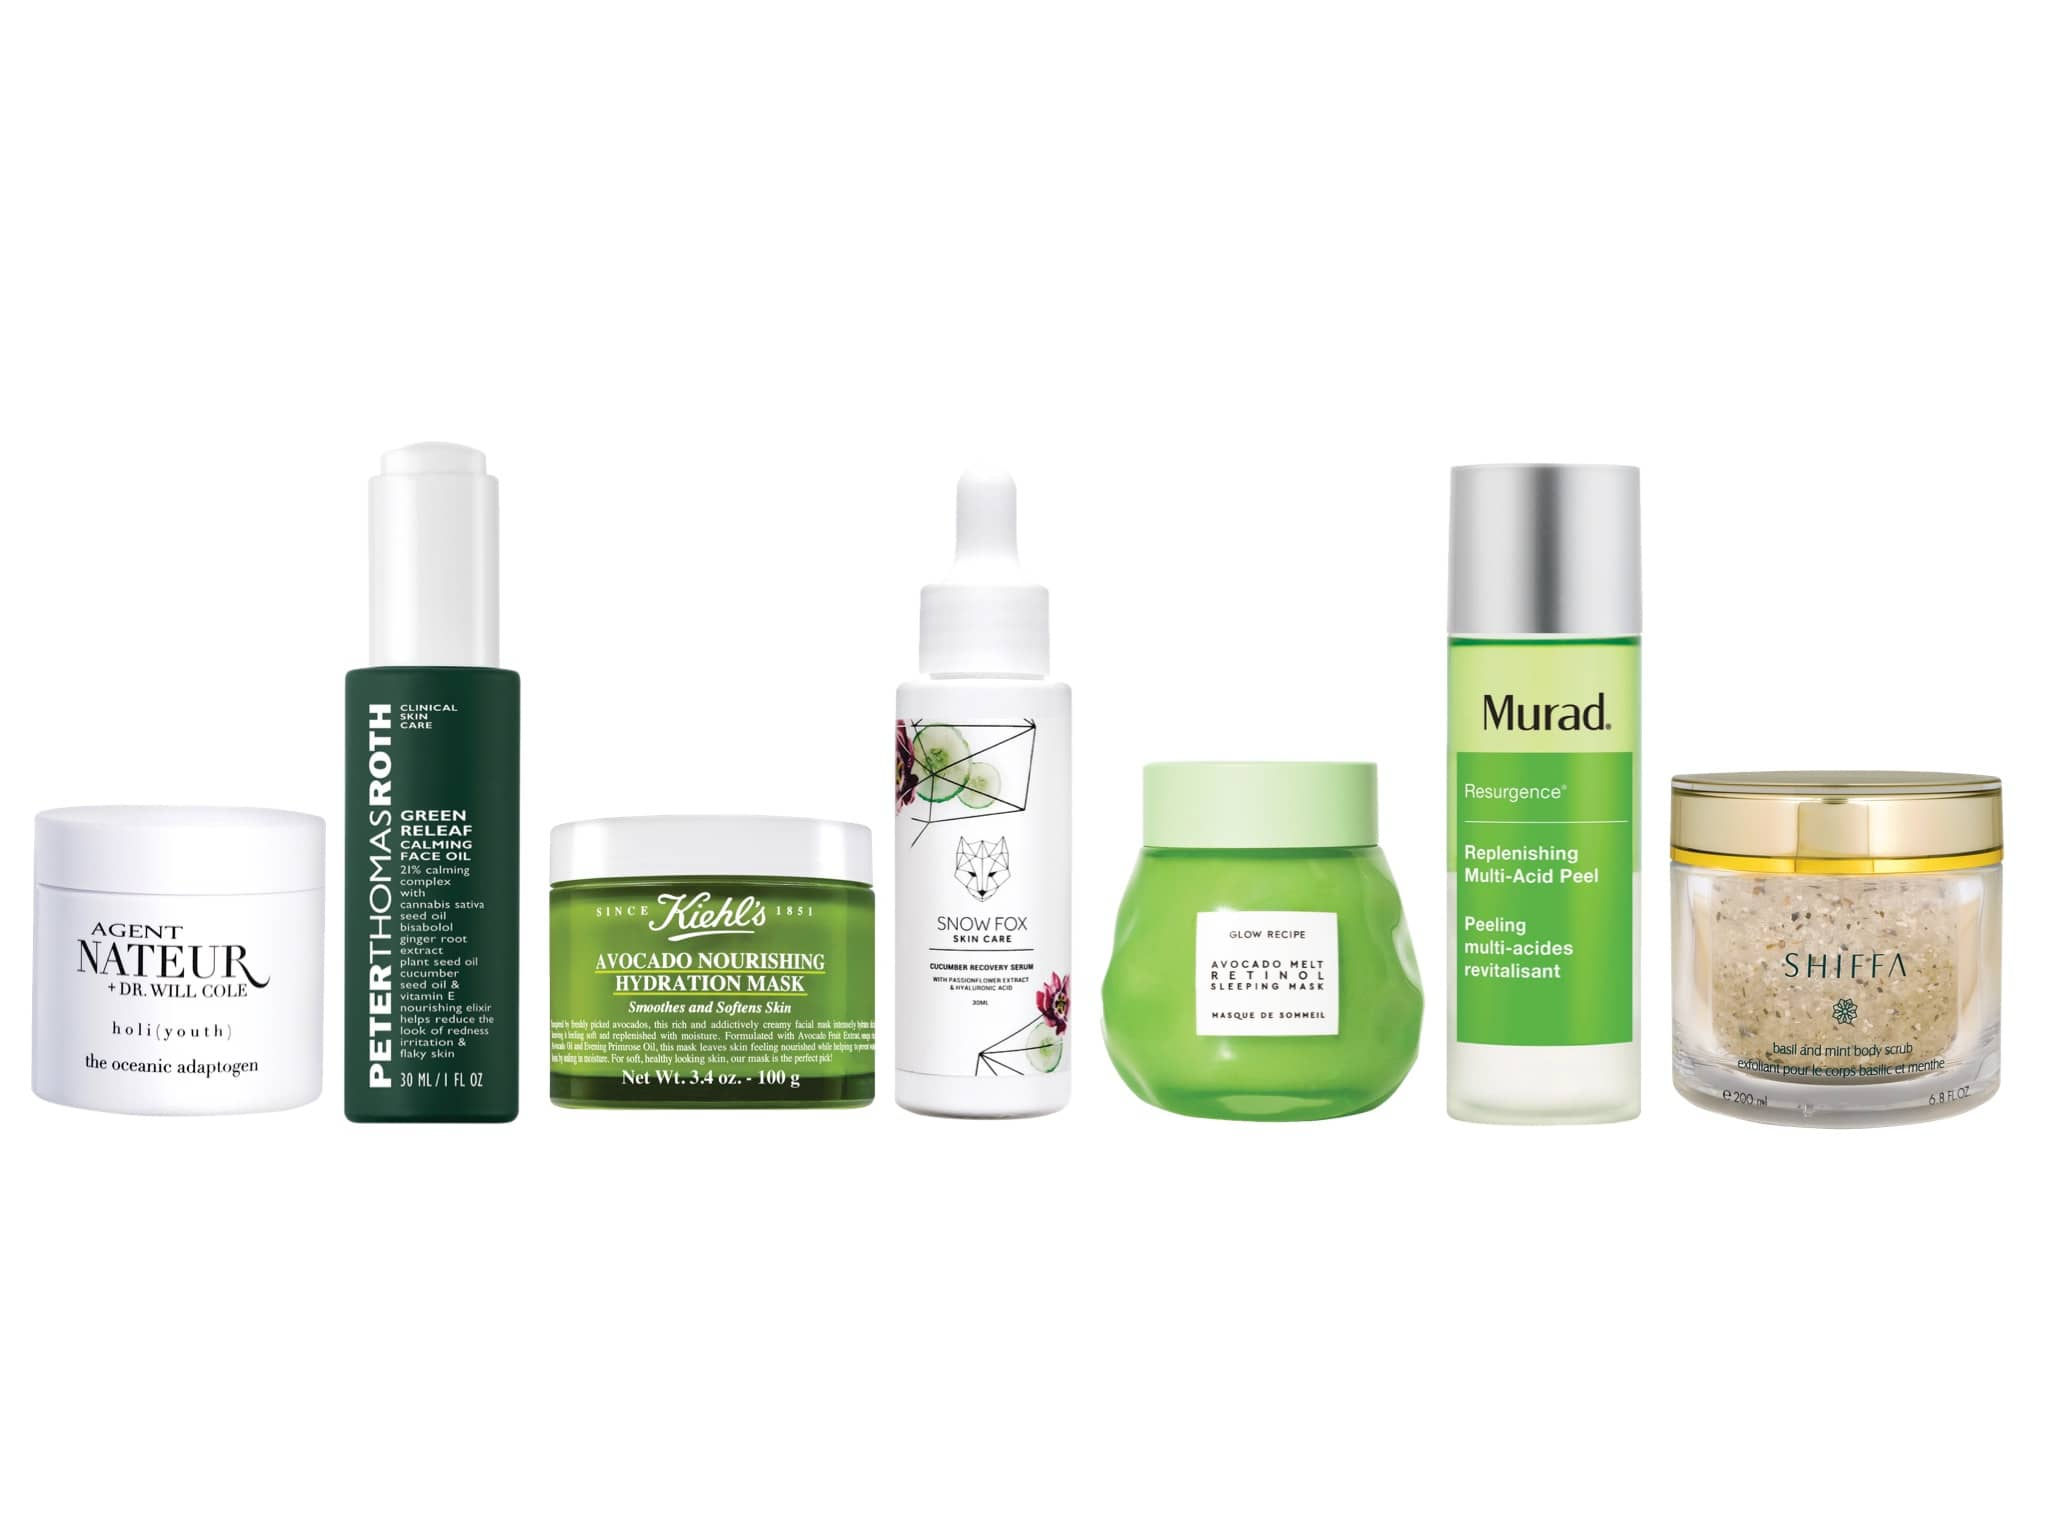 7 Beauty Products With Fresh Ingredients to Feed Your Complexion